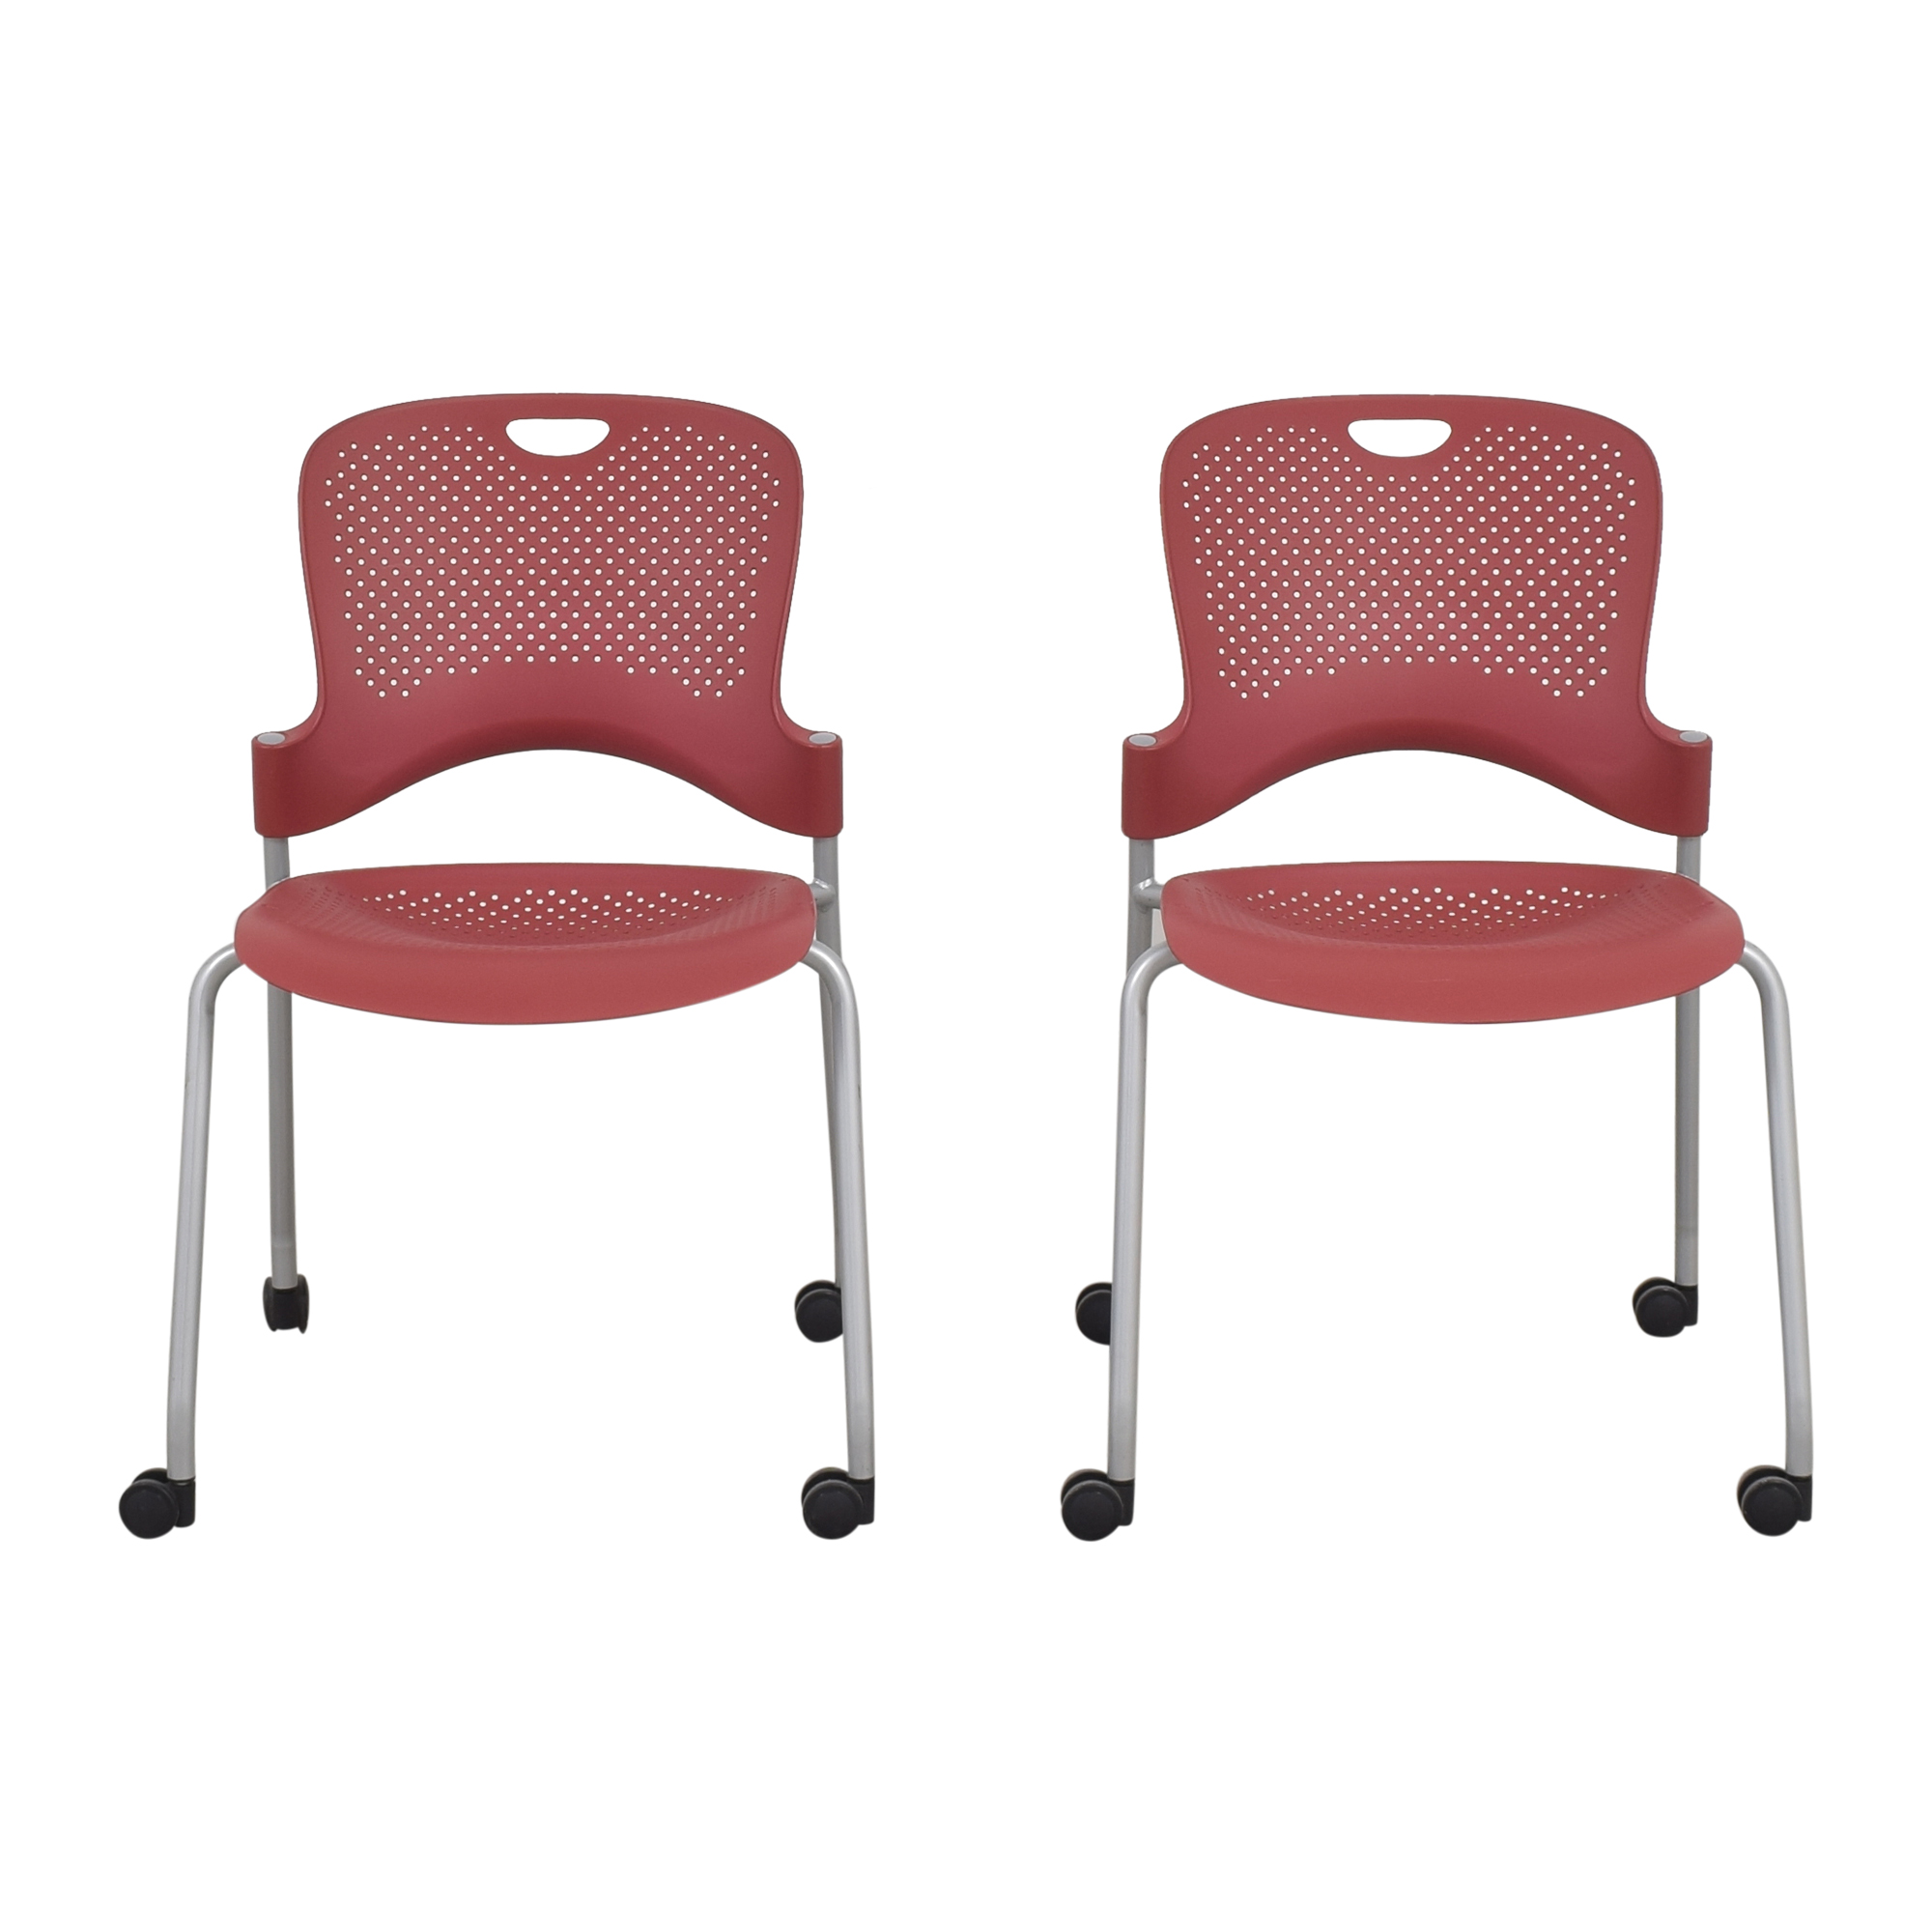 Herman Miller Herman Miller Caper Stacking Chairs discount